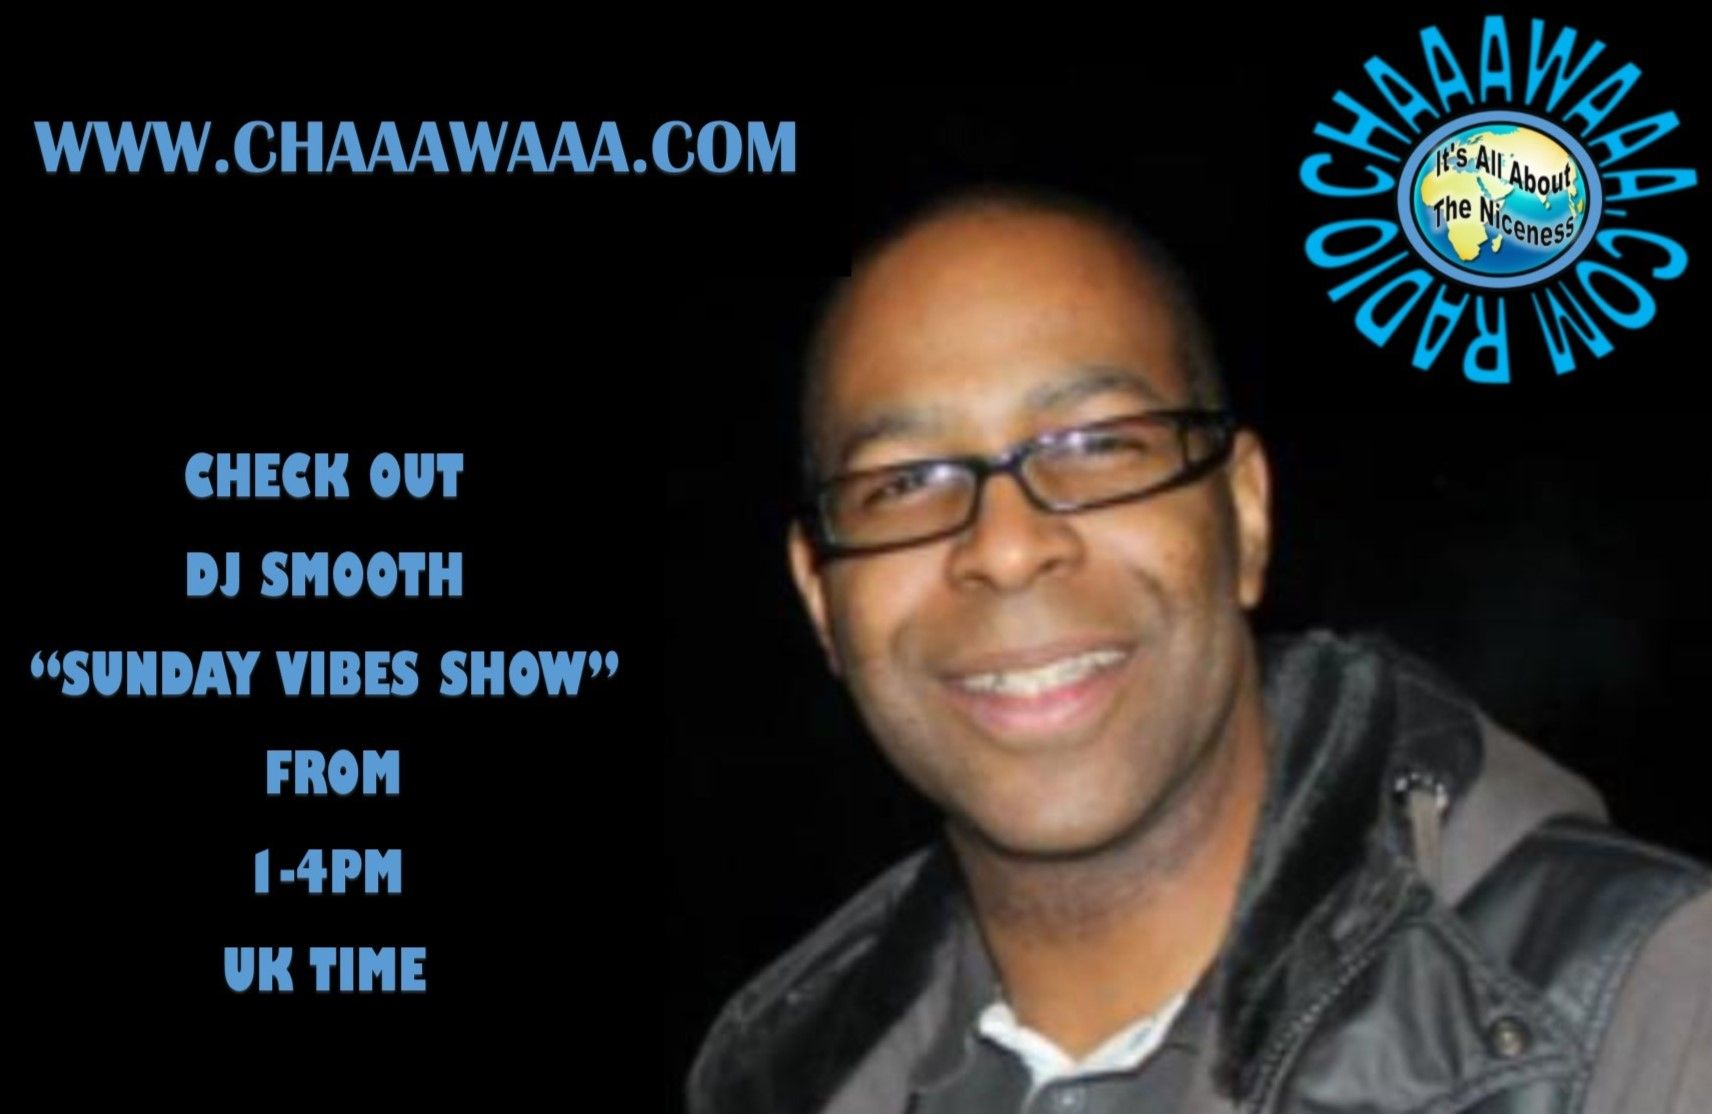 DJ Smooth on every Sunday from 1-4pm